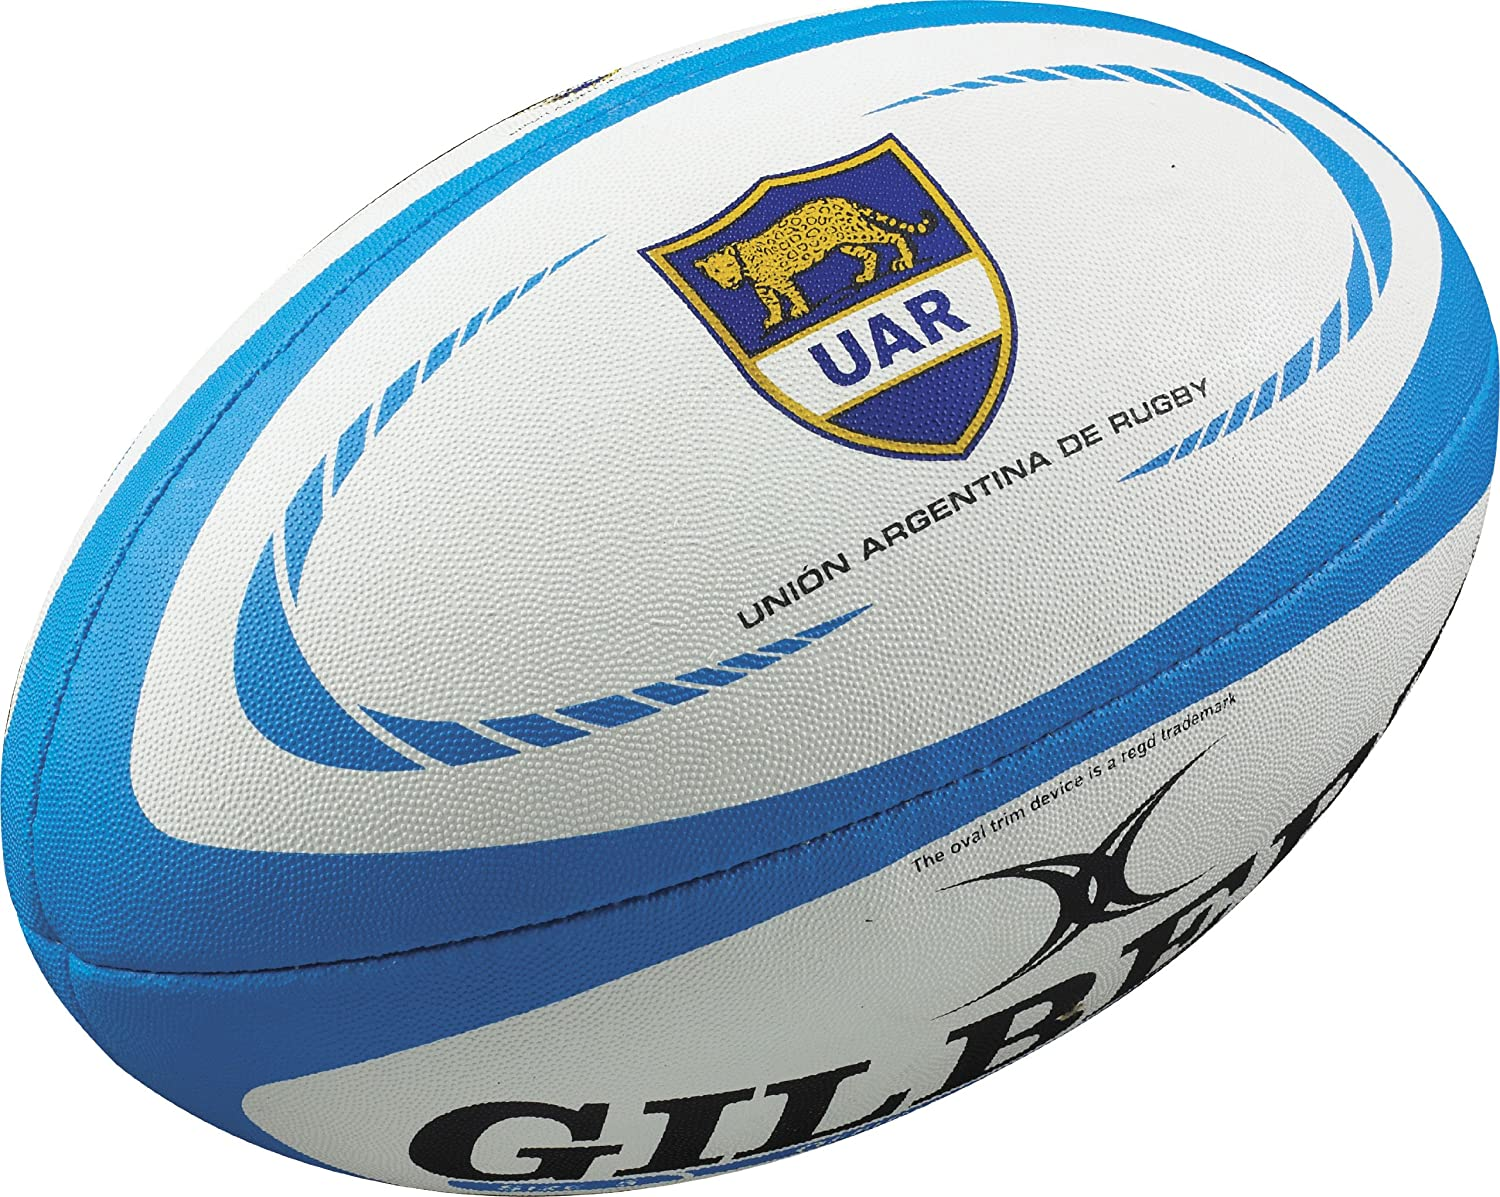 Gilbert Argentina Replica Rugby Raleigh Max 81% OFF Mall Ball